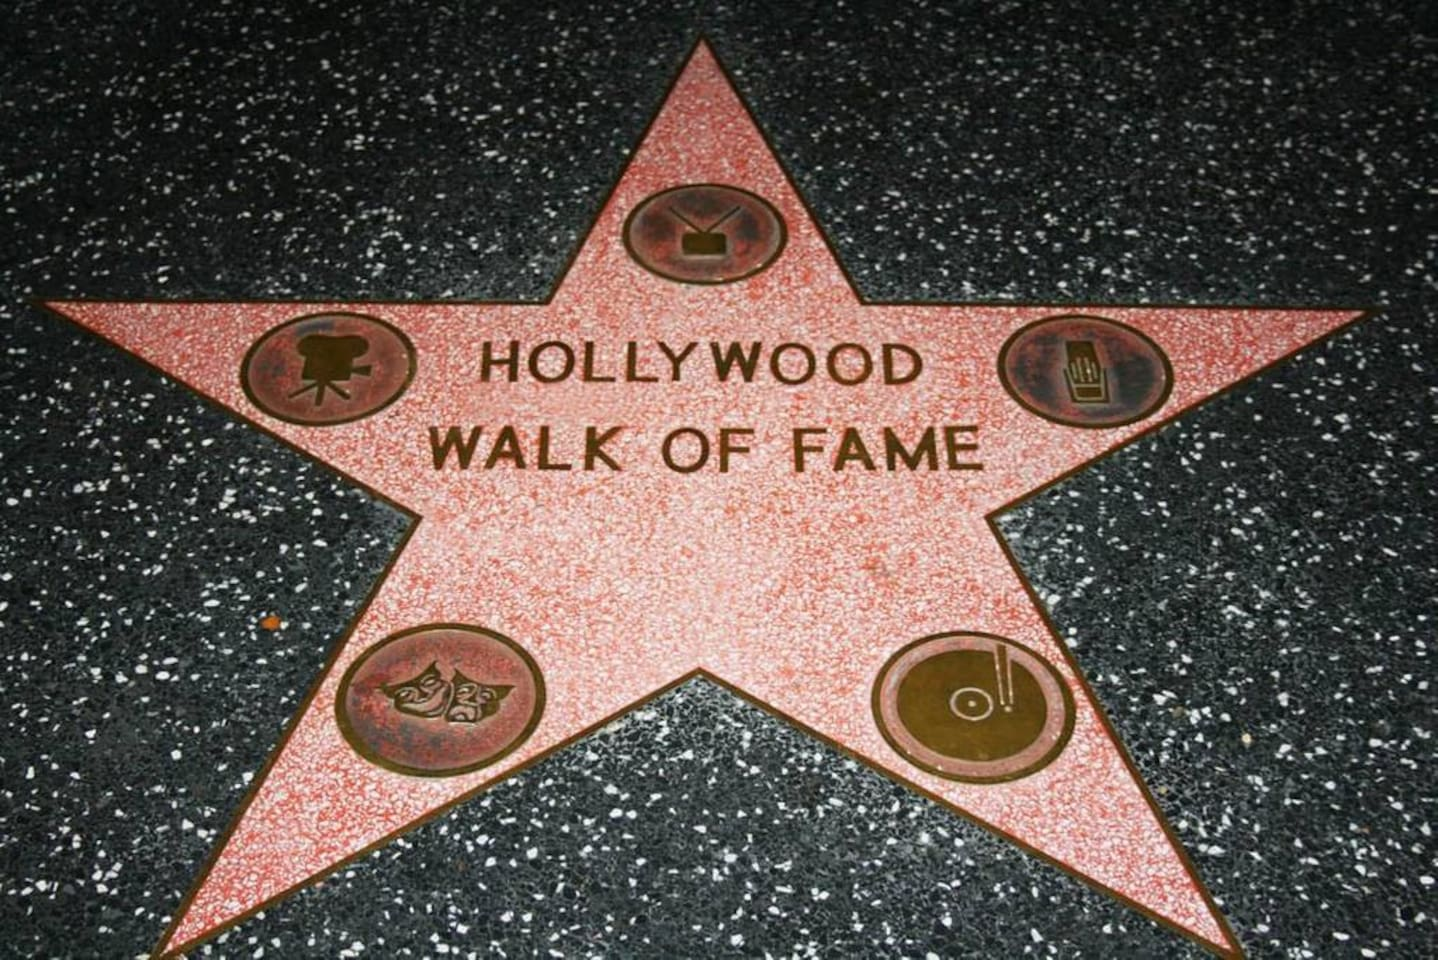 Just 19 miles to the Hollywood  Walk of Fame.